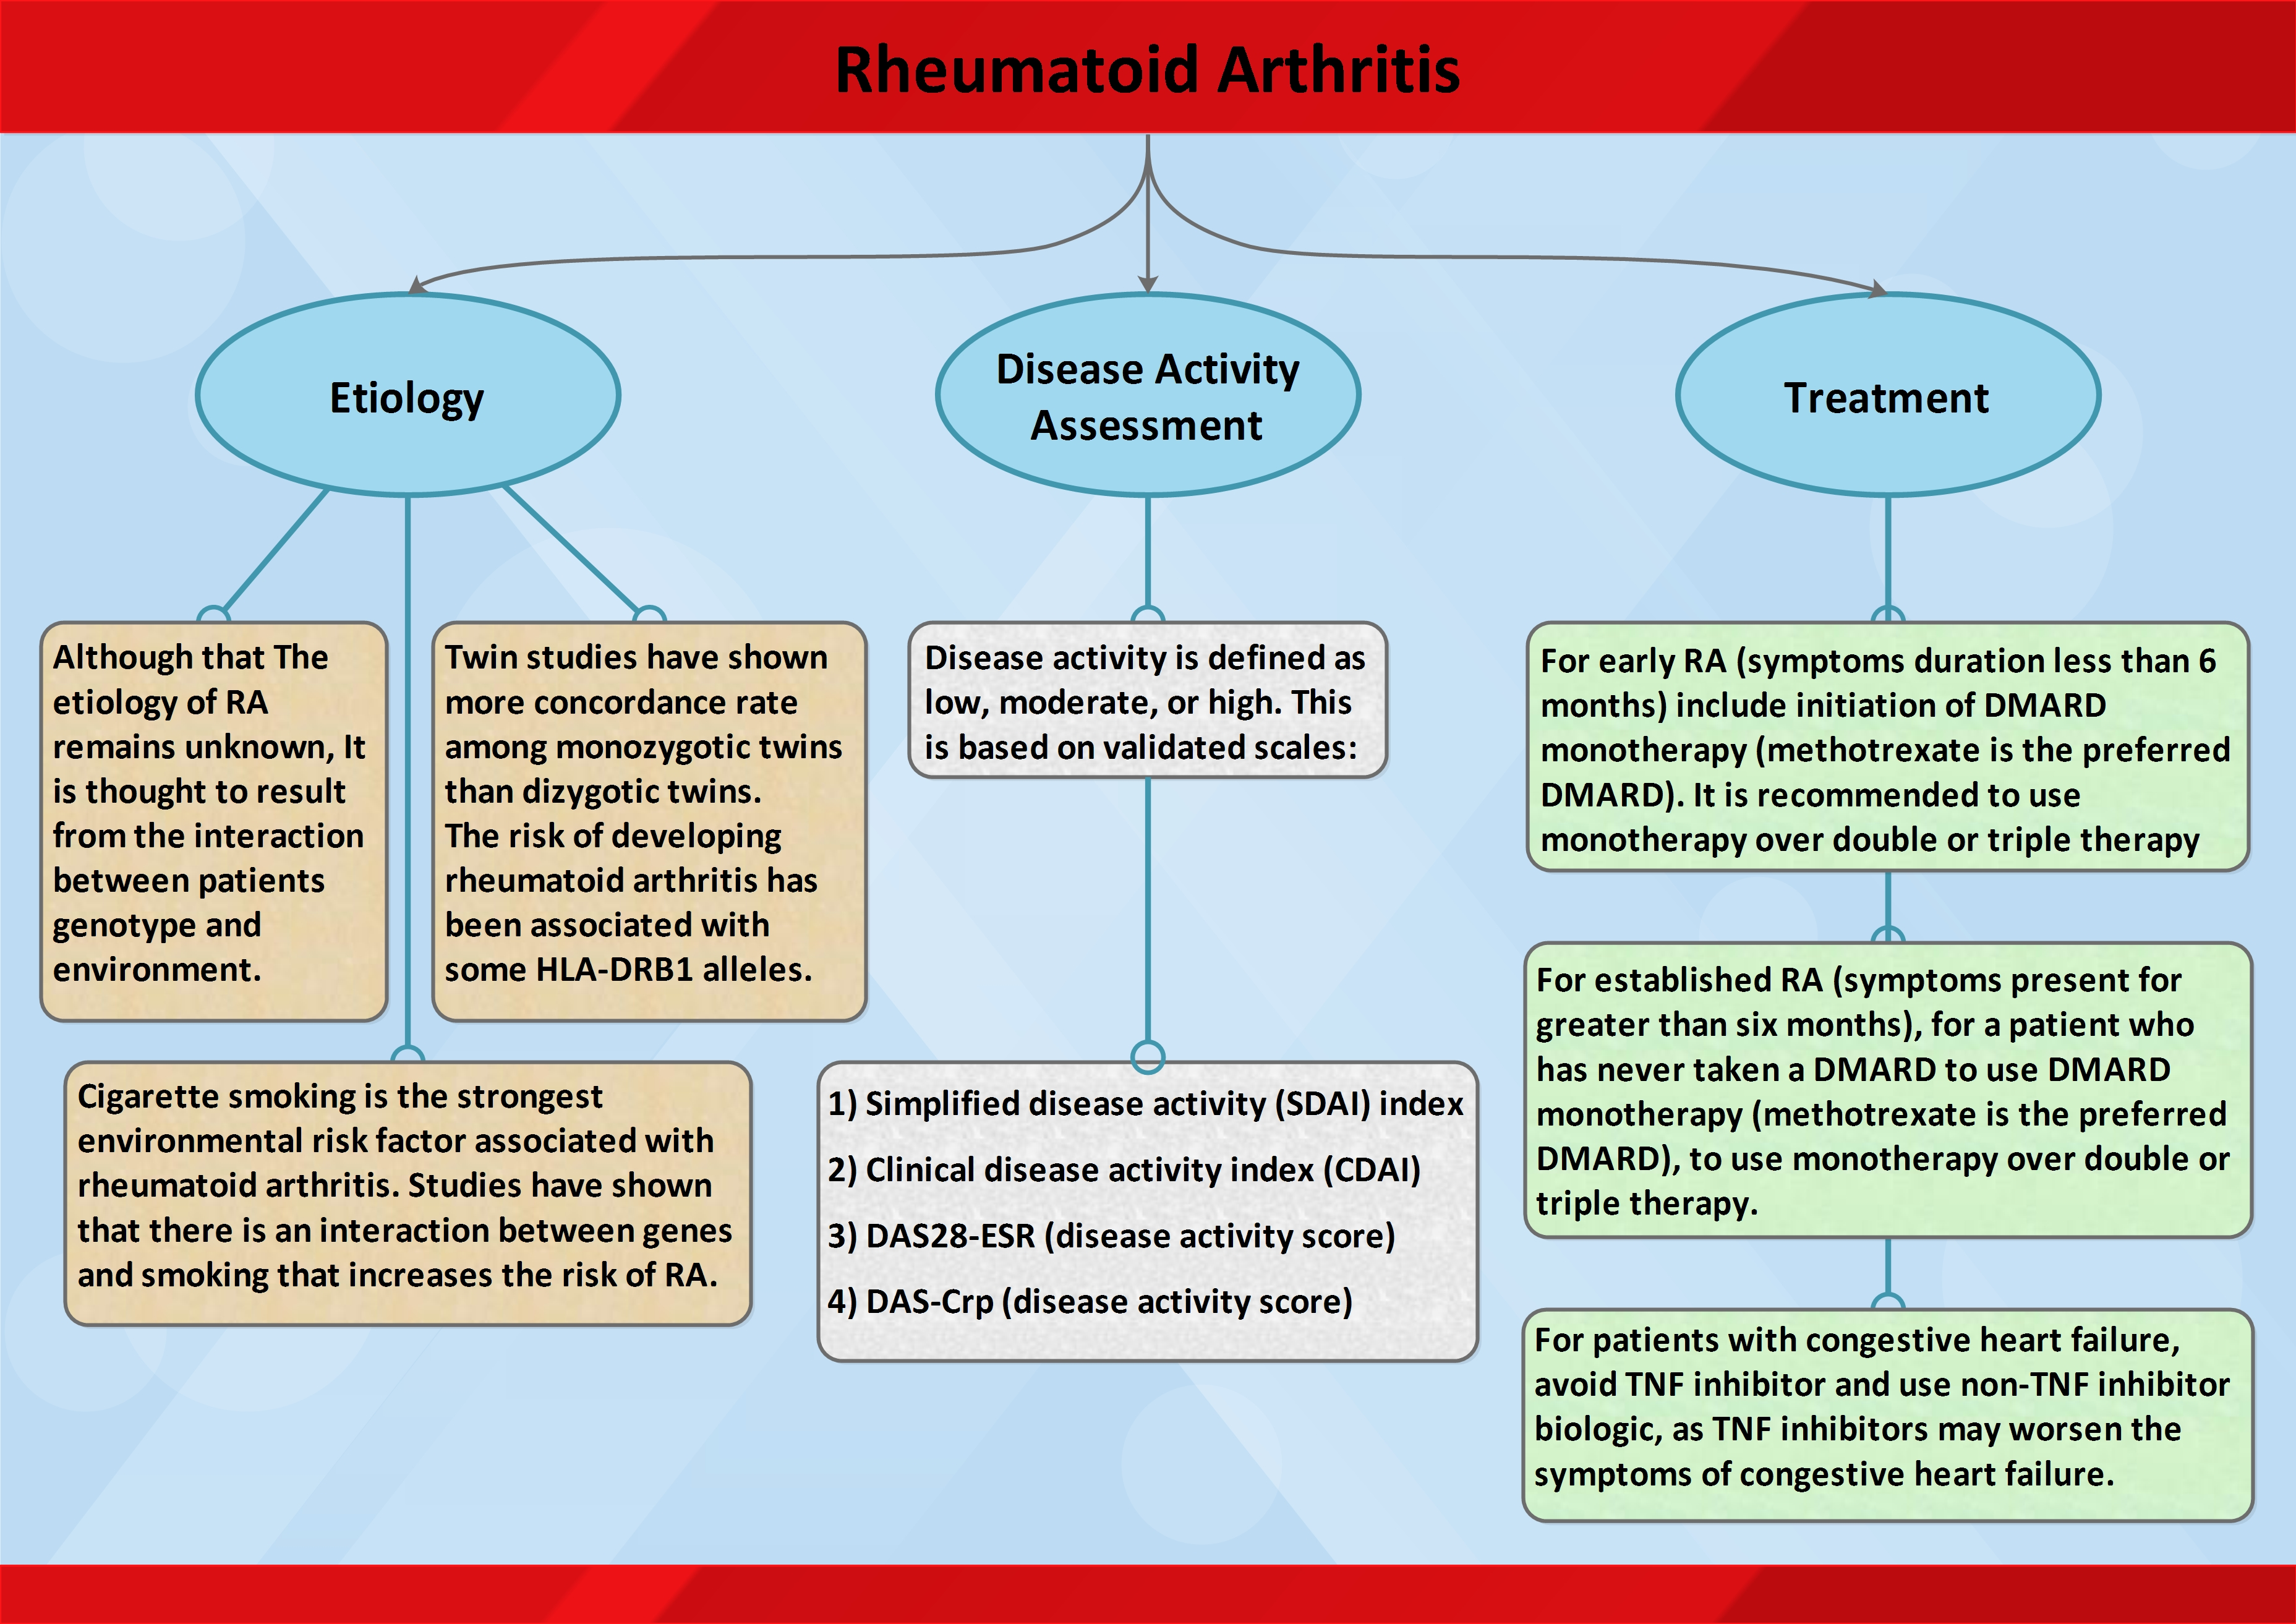 Summary keynotes on Rheumatoid Arthritis